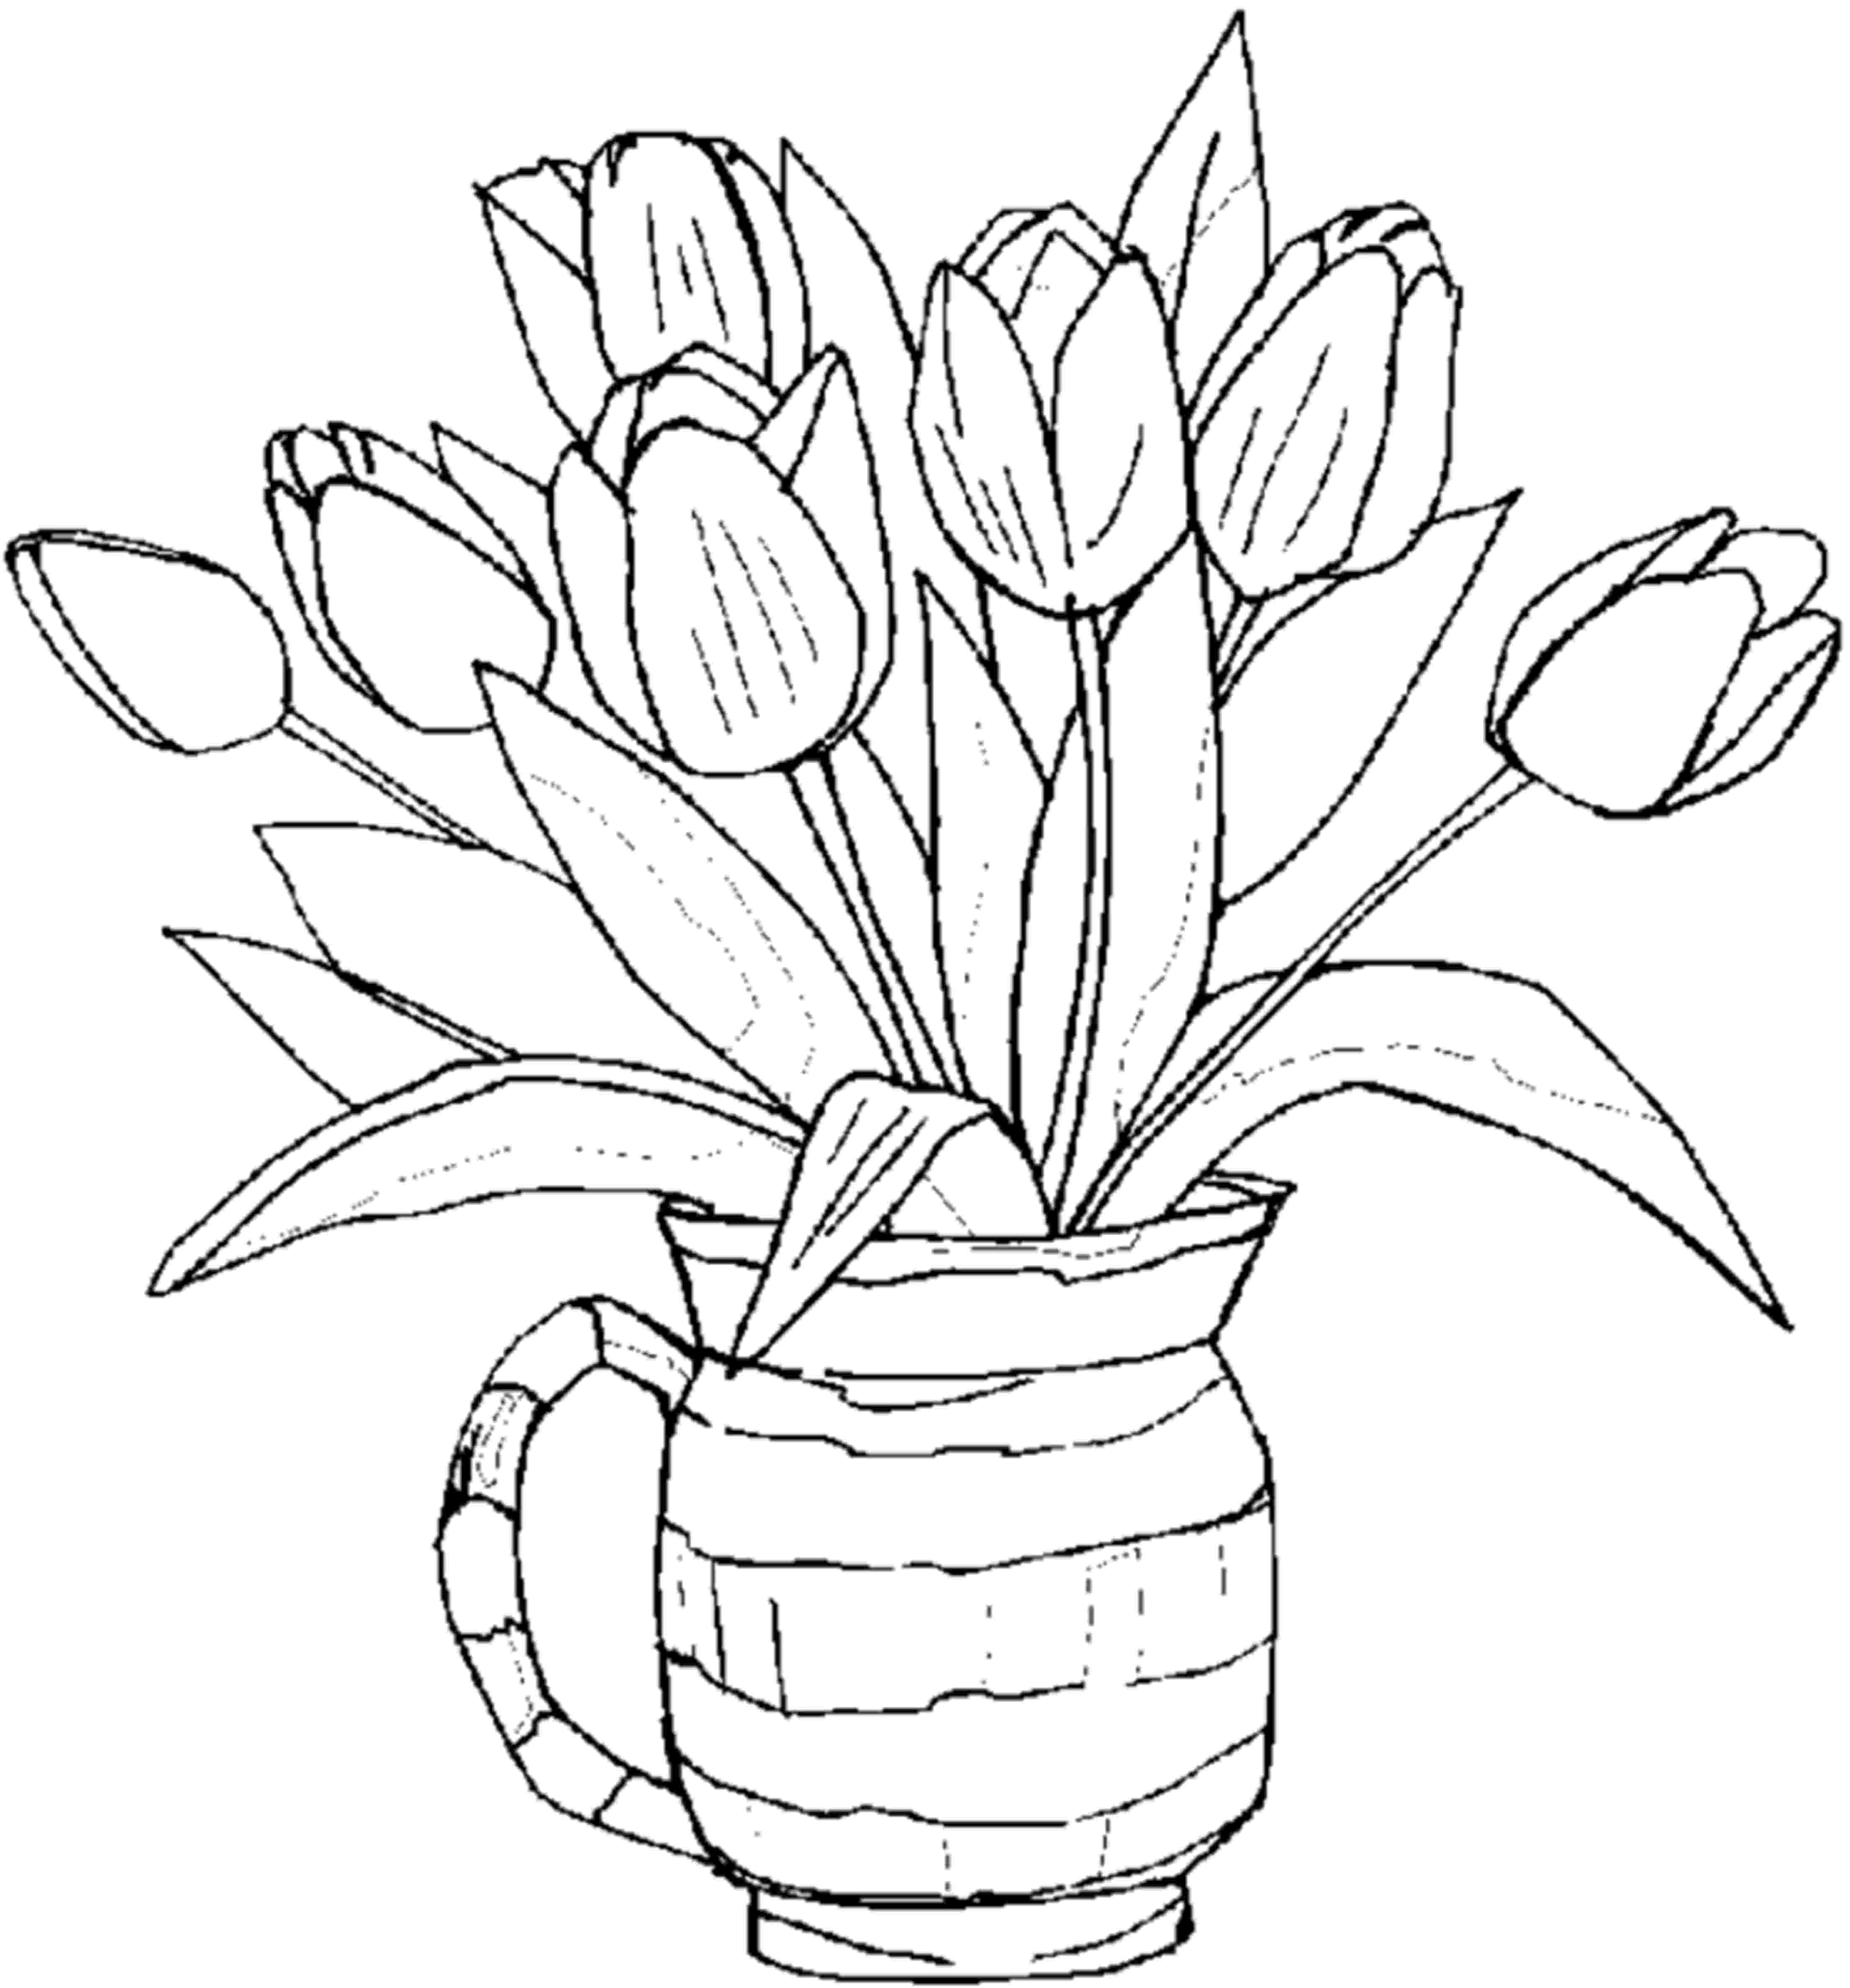 pictures of flowers to color free printables free printable flower coloring pages for kids best pictures color to of free printables flowers